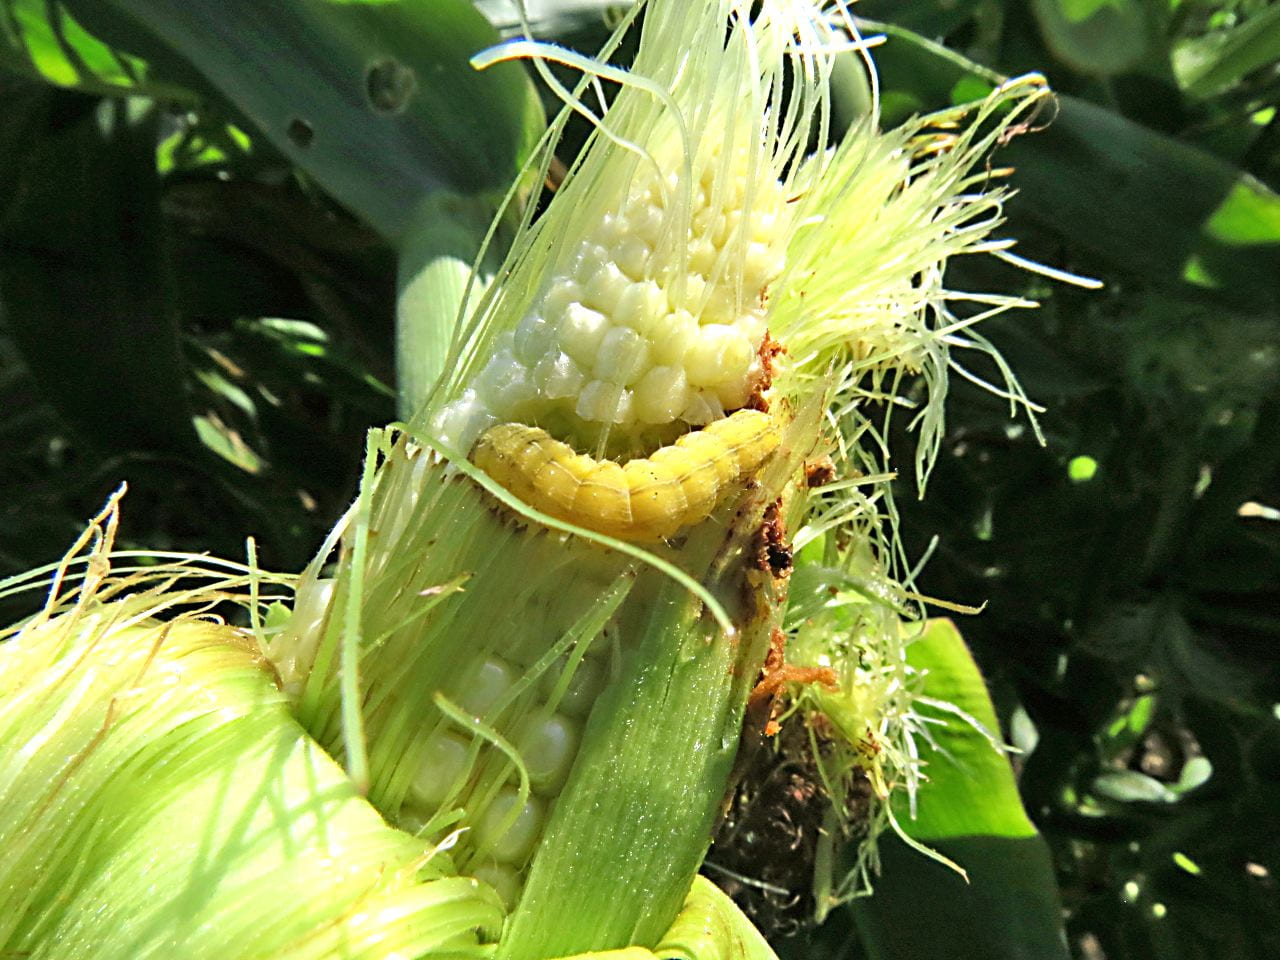 photo of corn earworm on ear of corn